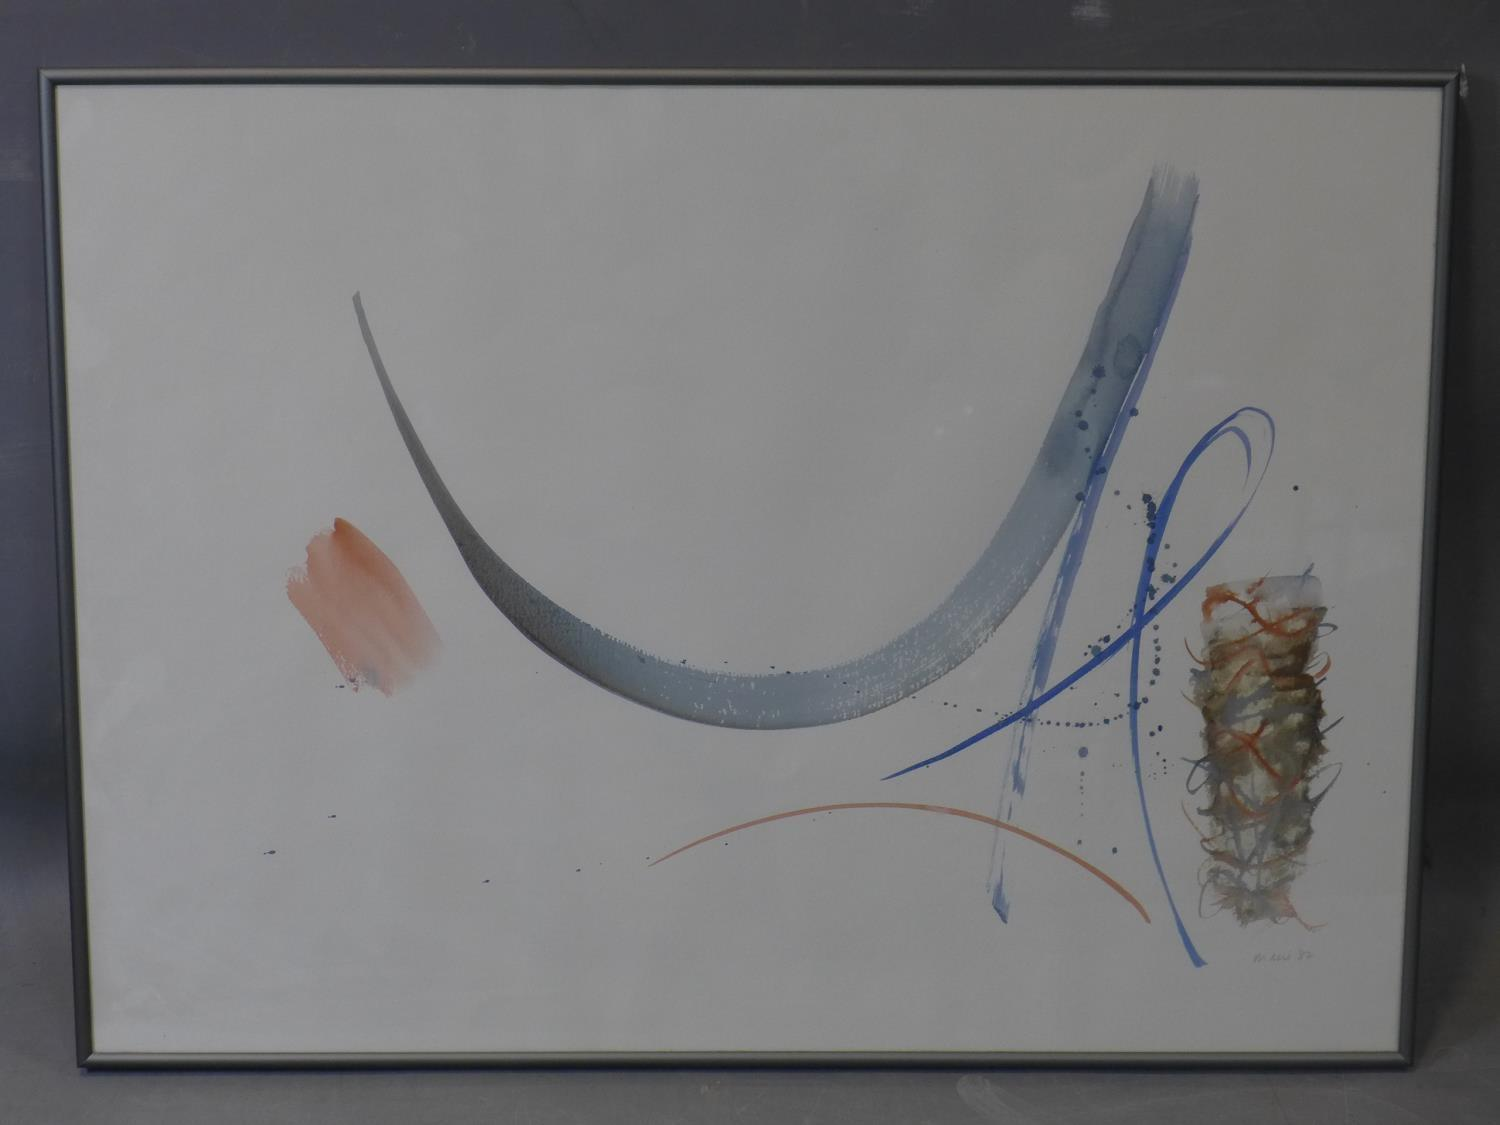 Lot 102 - Hermione Holmes (20th century), abstract study, watercolour, signed 'Mani 87' in pencil to lower